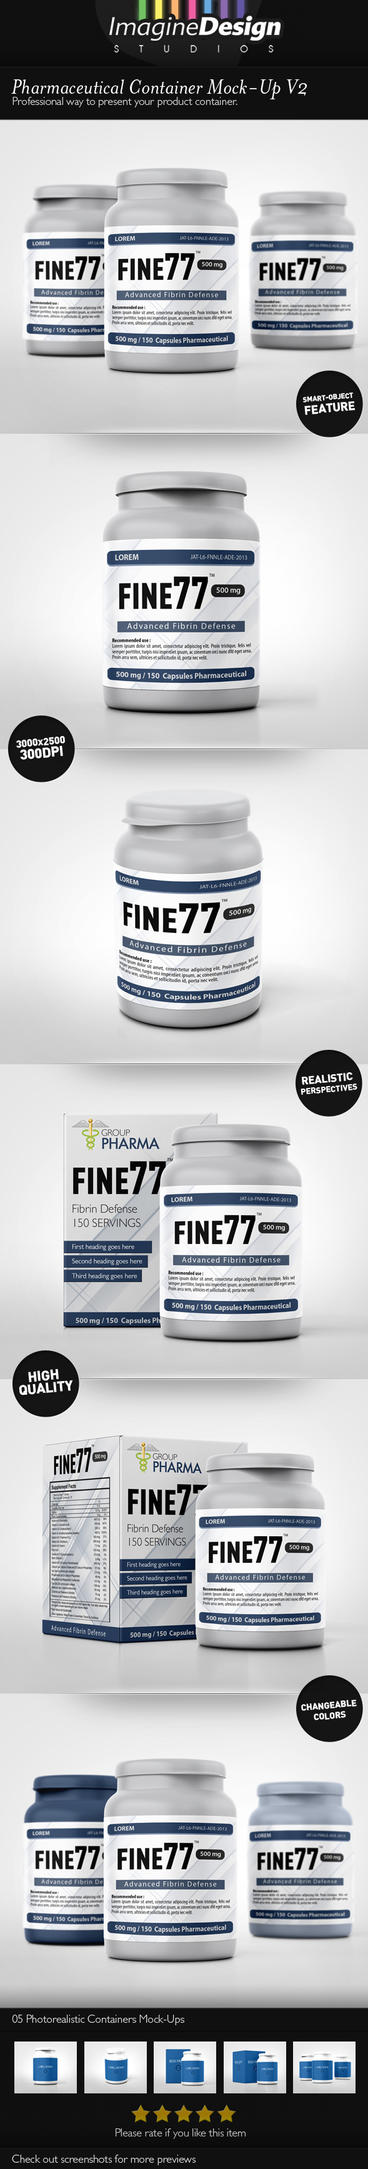 Pharmaceutical Container Mock-Up V2 by idesignstudio